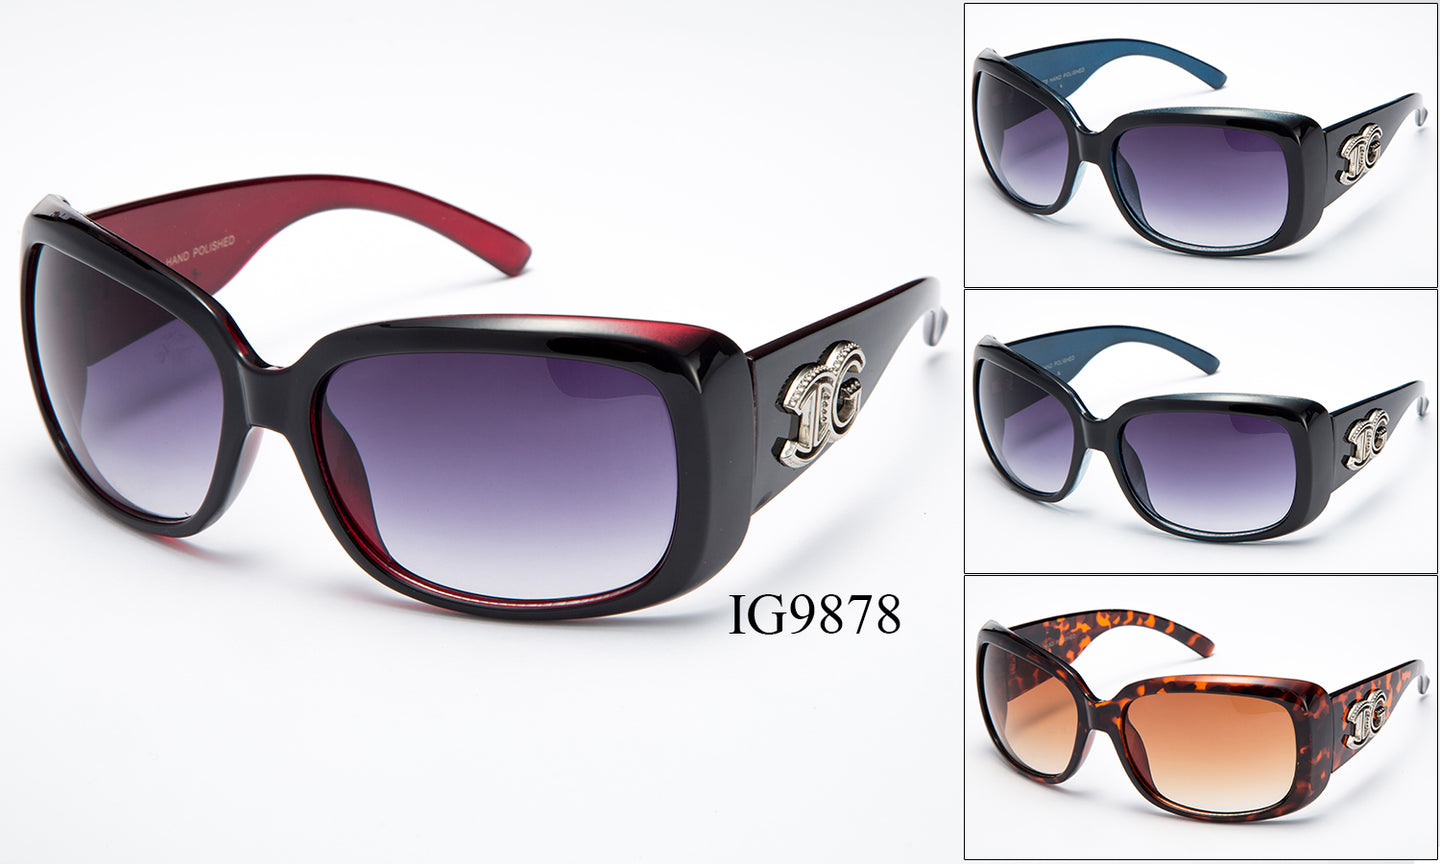 Womens Wholesale Fashionable Plastic Thick Armband Sunglasses 1 Dozen IG9878 - BuyWholesaleSunglasses.com